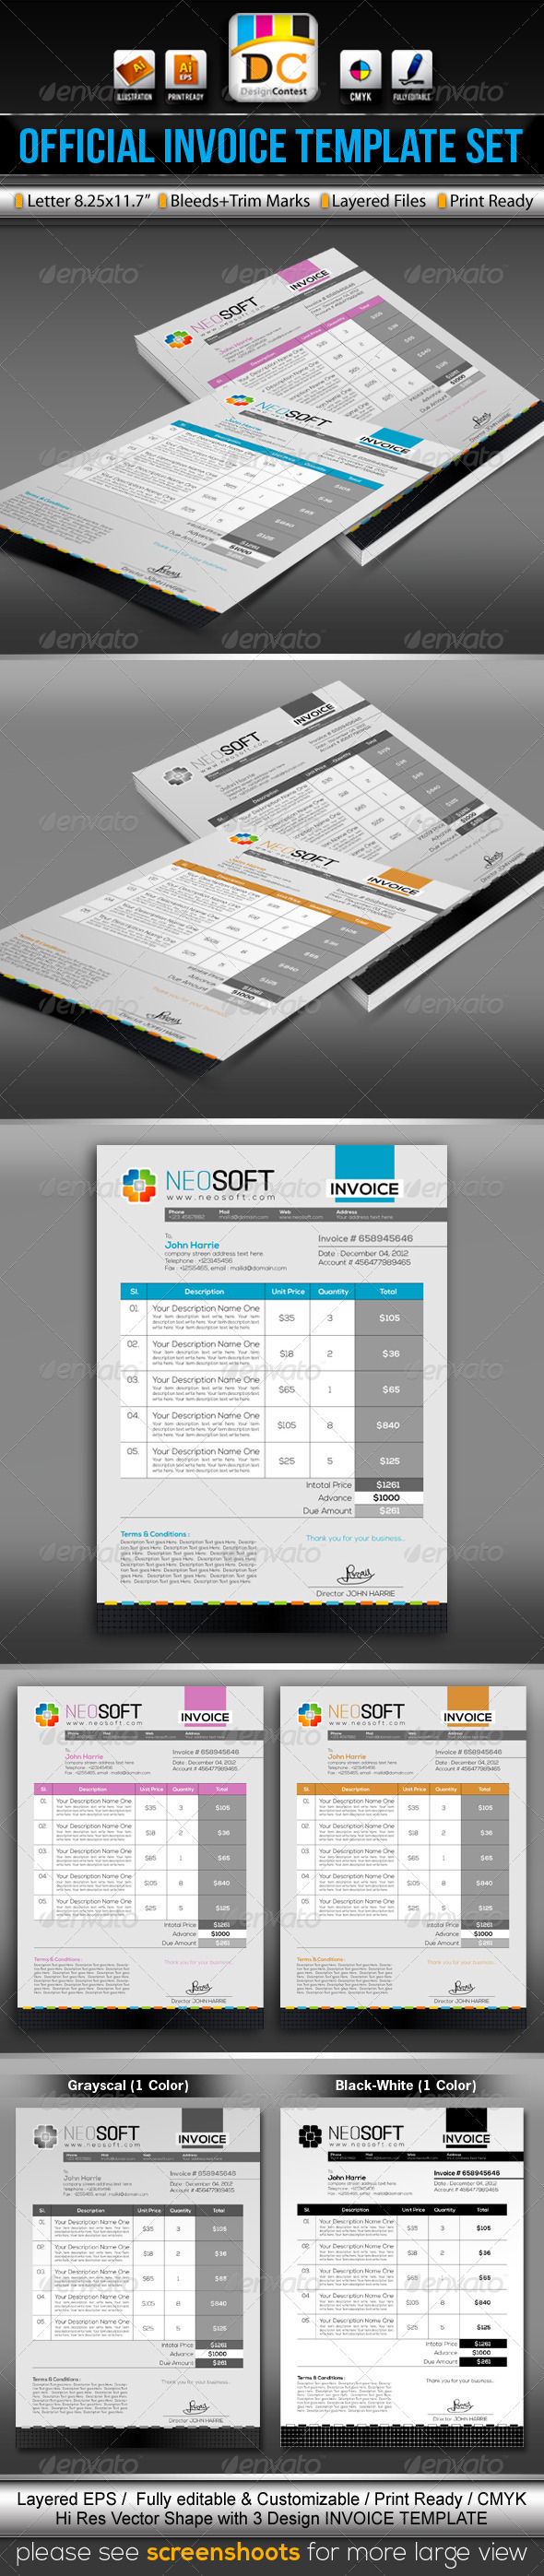 NeoSoft_Official Invoice/Cash Memo Template Set   Proposals U0026 Invoices  Stationery